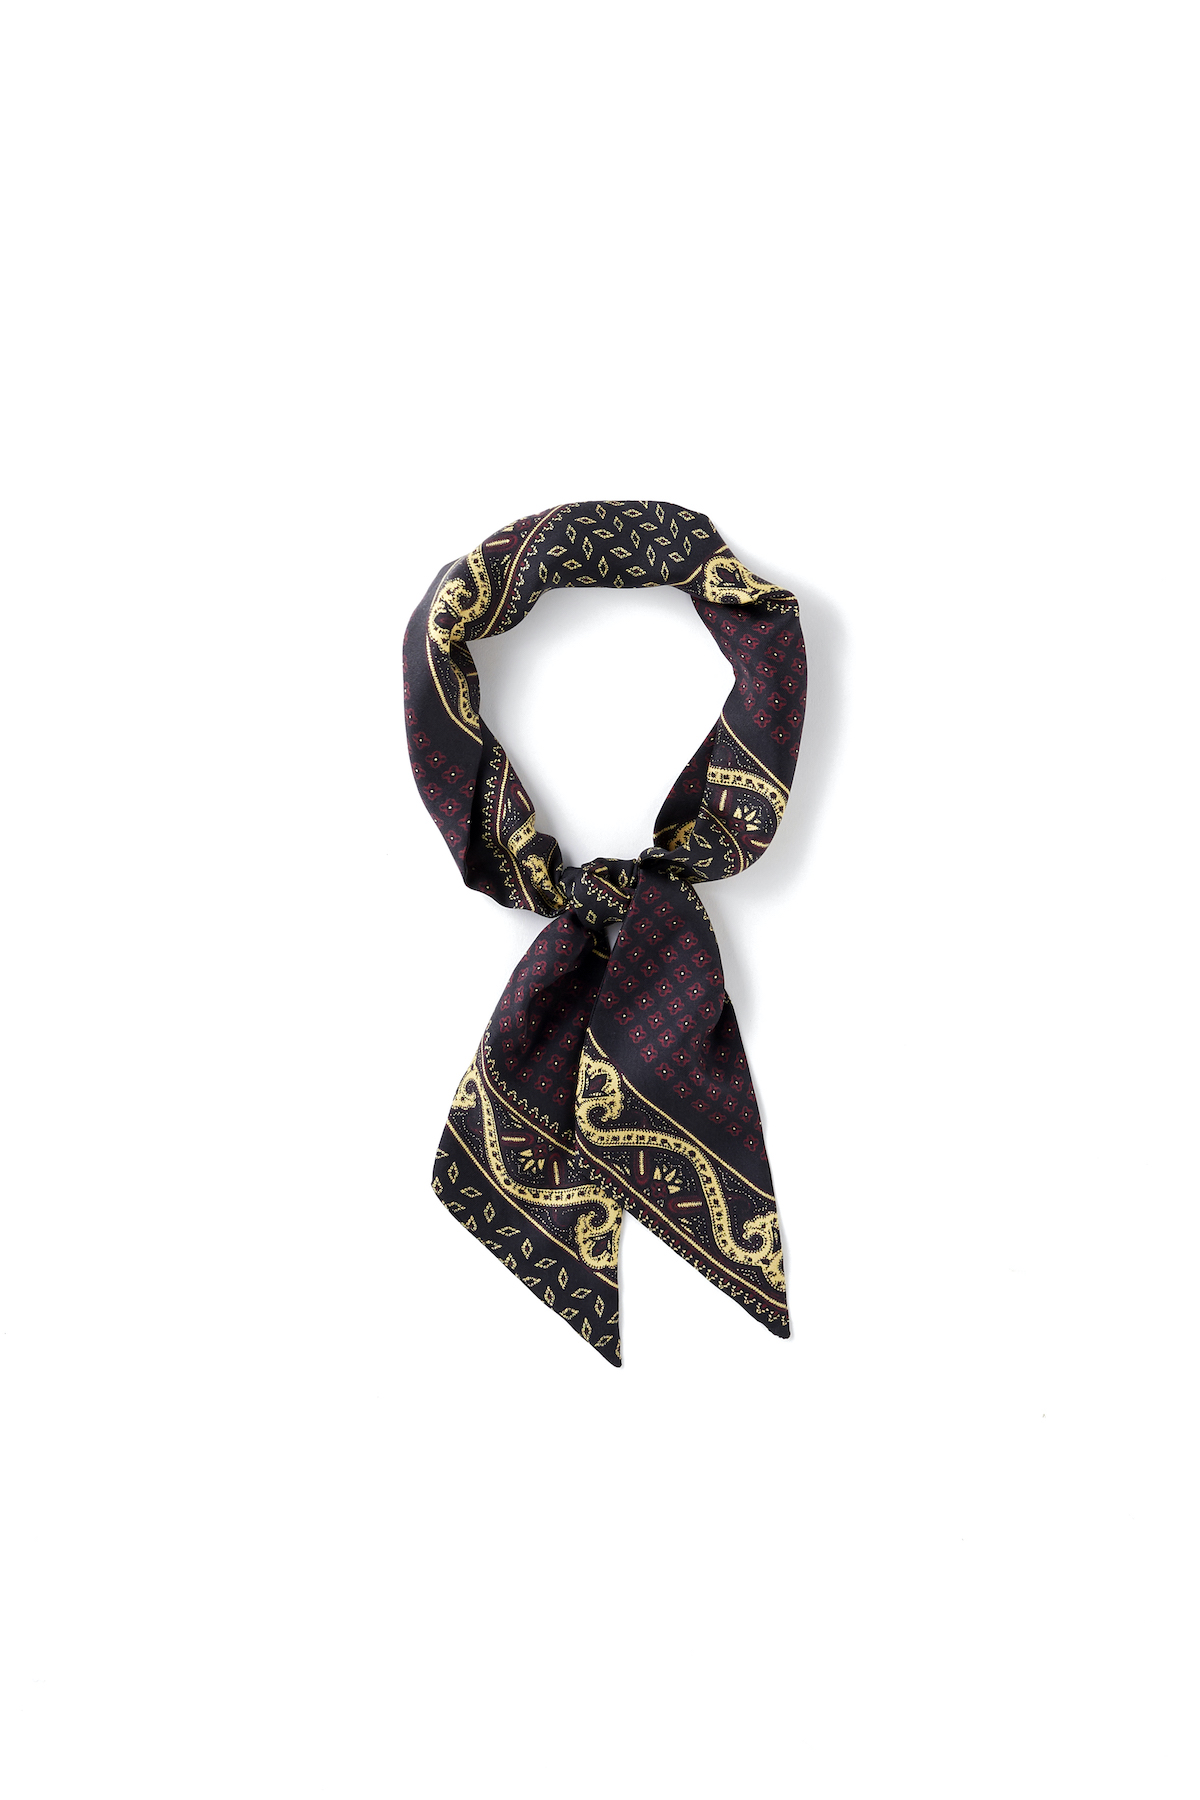 OLD JOE BRAND. 「SCARF TIE / BLACK」